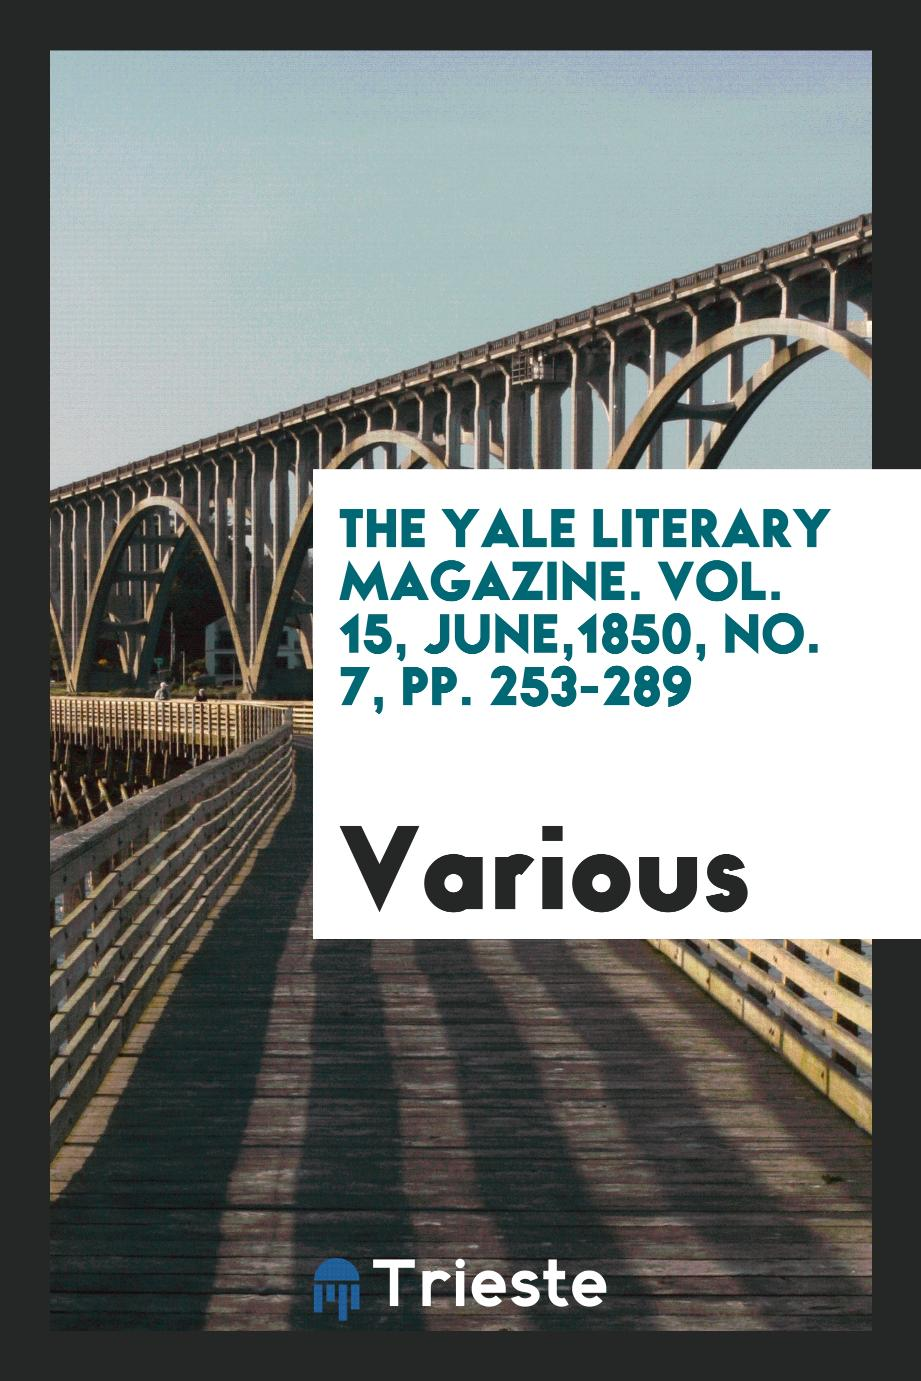 The Yale literary magazine. Vol. 15, June,1850, No. 7, pp. 253-289